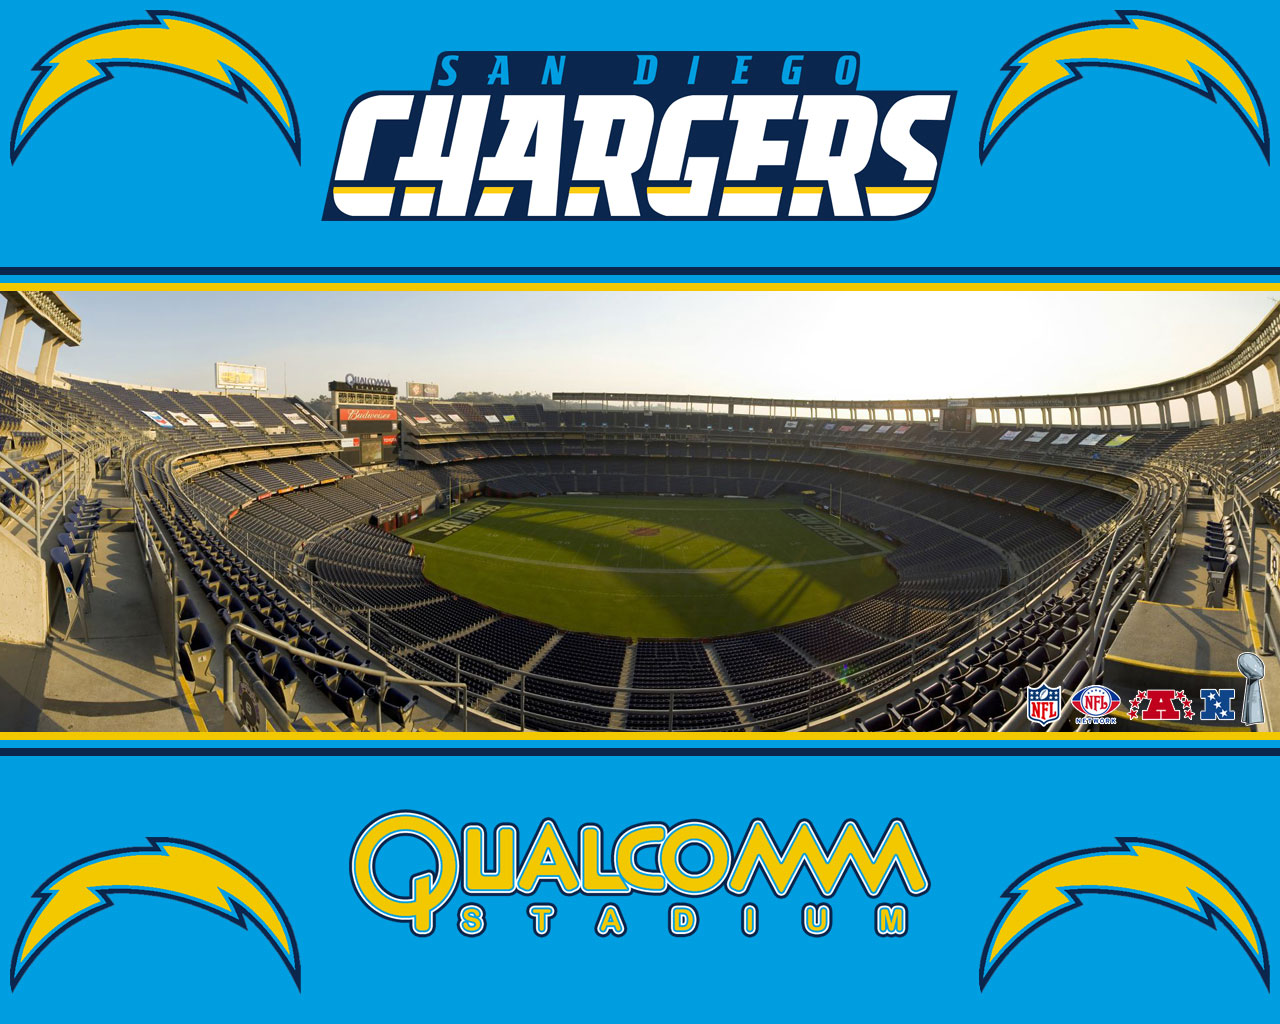 Qualcomm stadium San Diego Chargers wallpaper Qualcomm Stadium Chargers Wallpaper